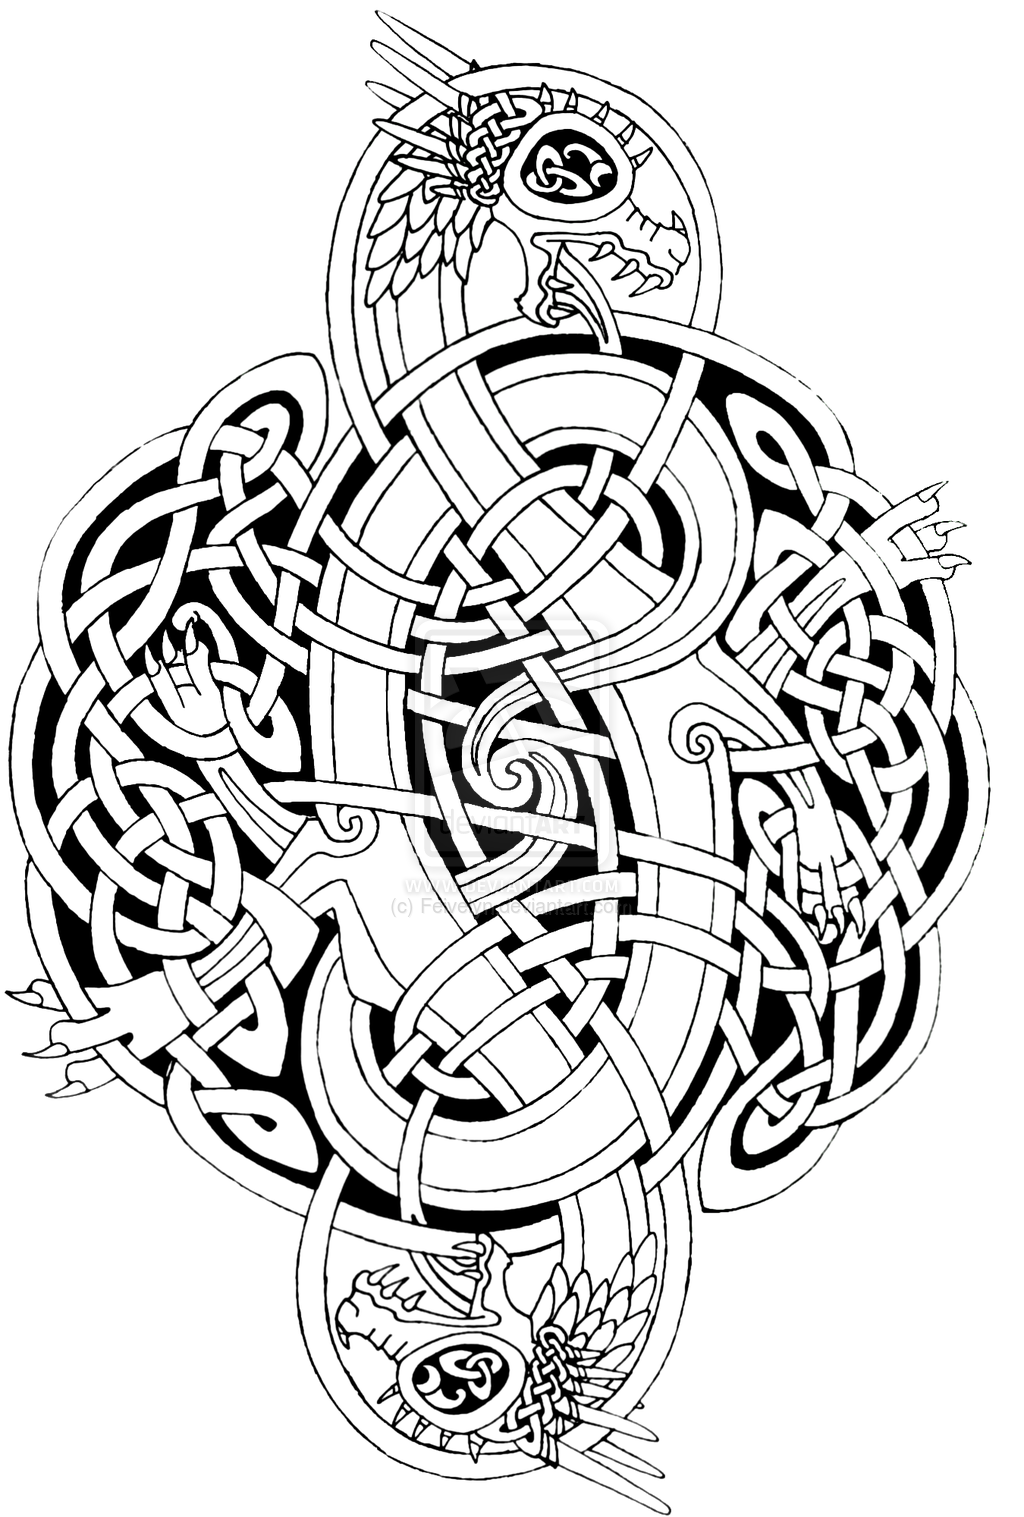 celtic coloring page celtic knot coloring pages to download and print for free celtic coloring page